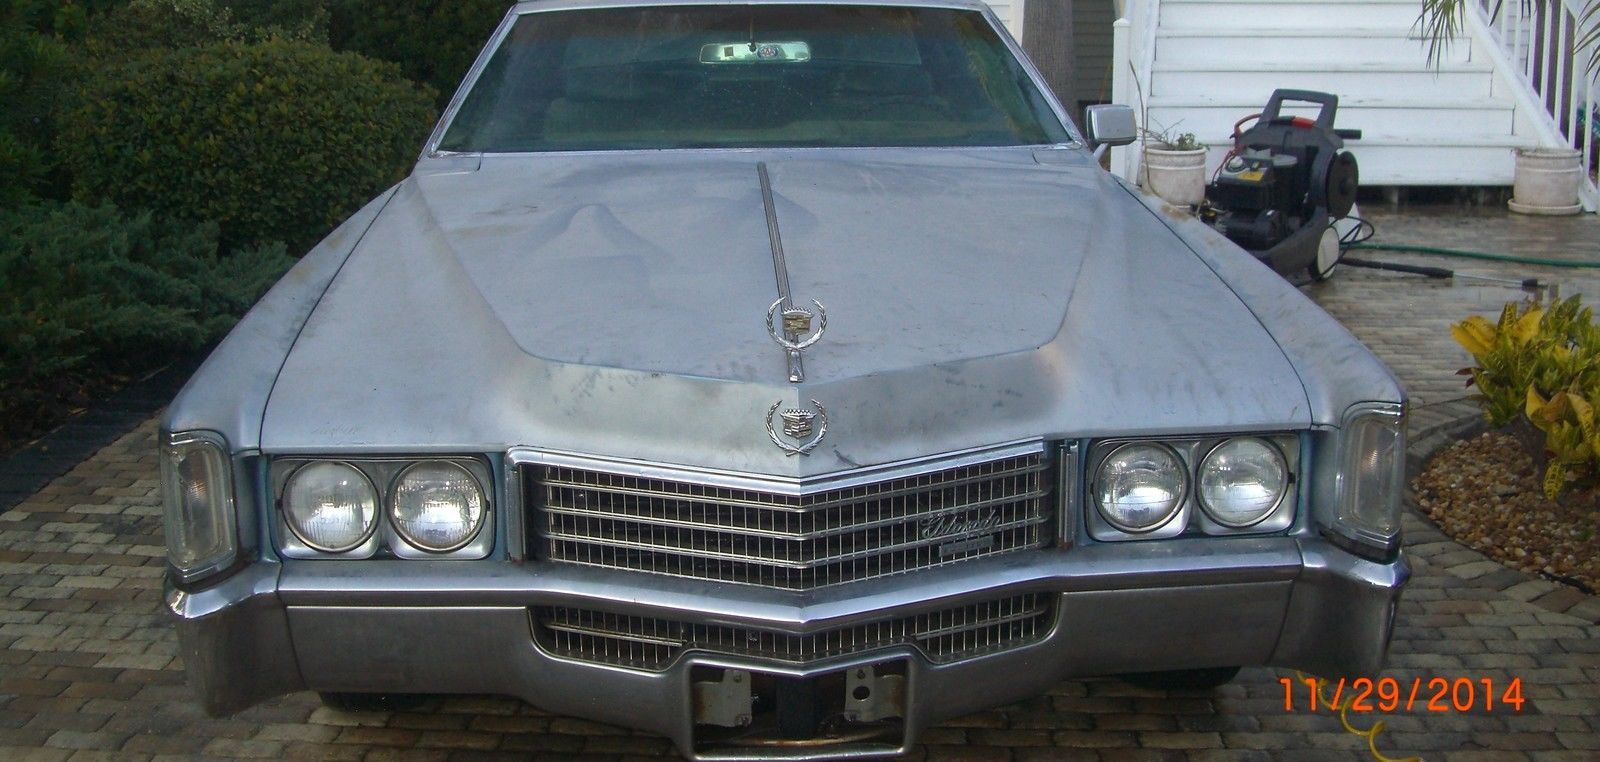 1970 cadillac eldorado 500 cubic inch 8 2 liter engine family owned since 1974 classic. Black Bedroom Furniture Sets. Home Design Ideas